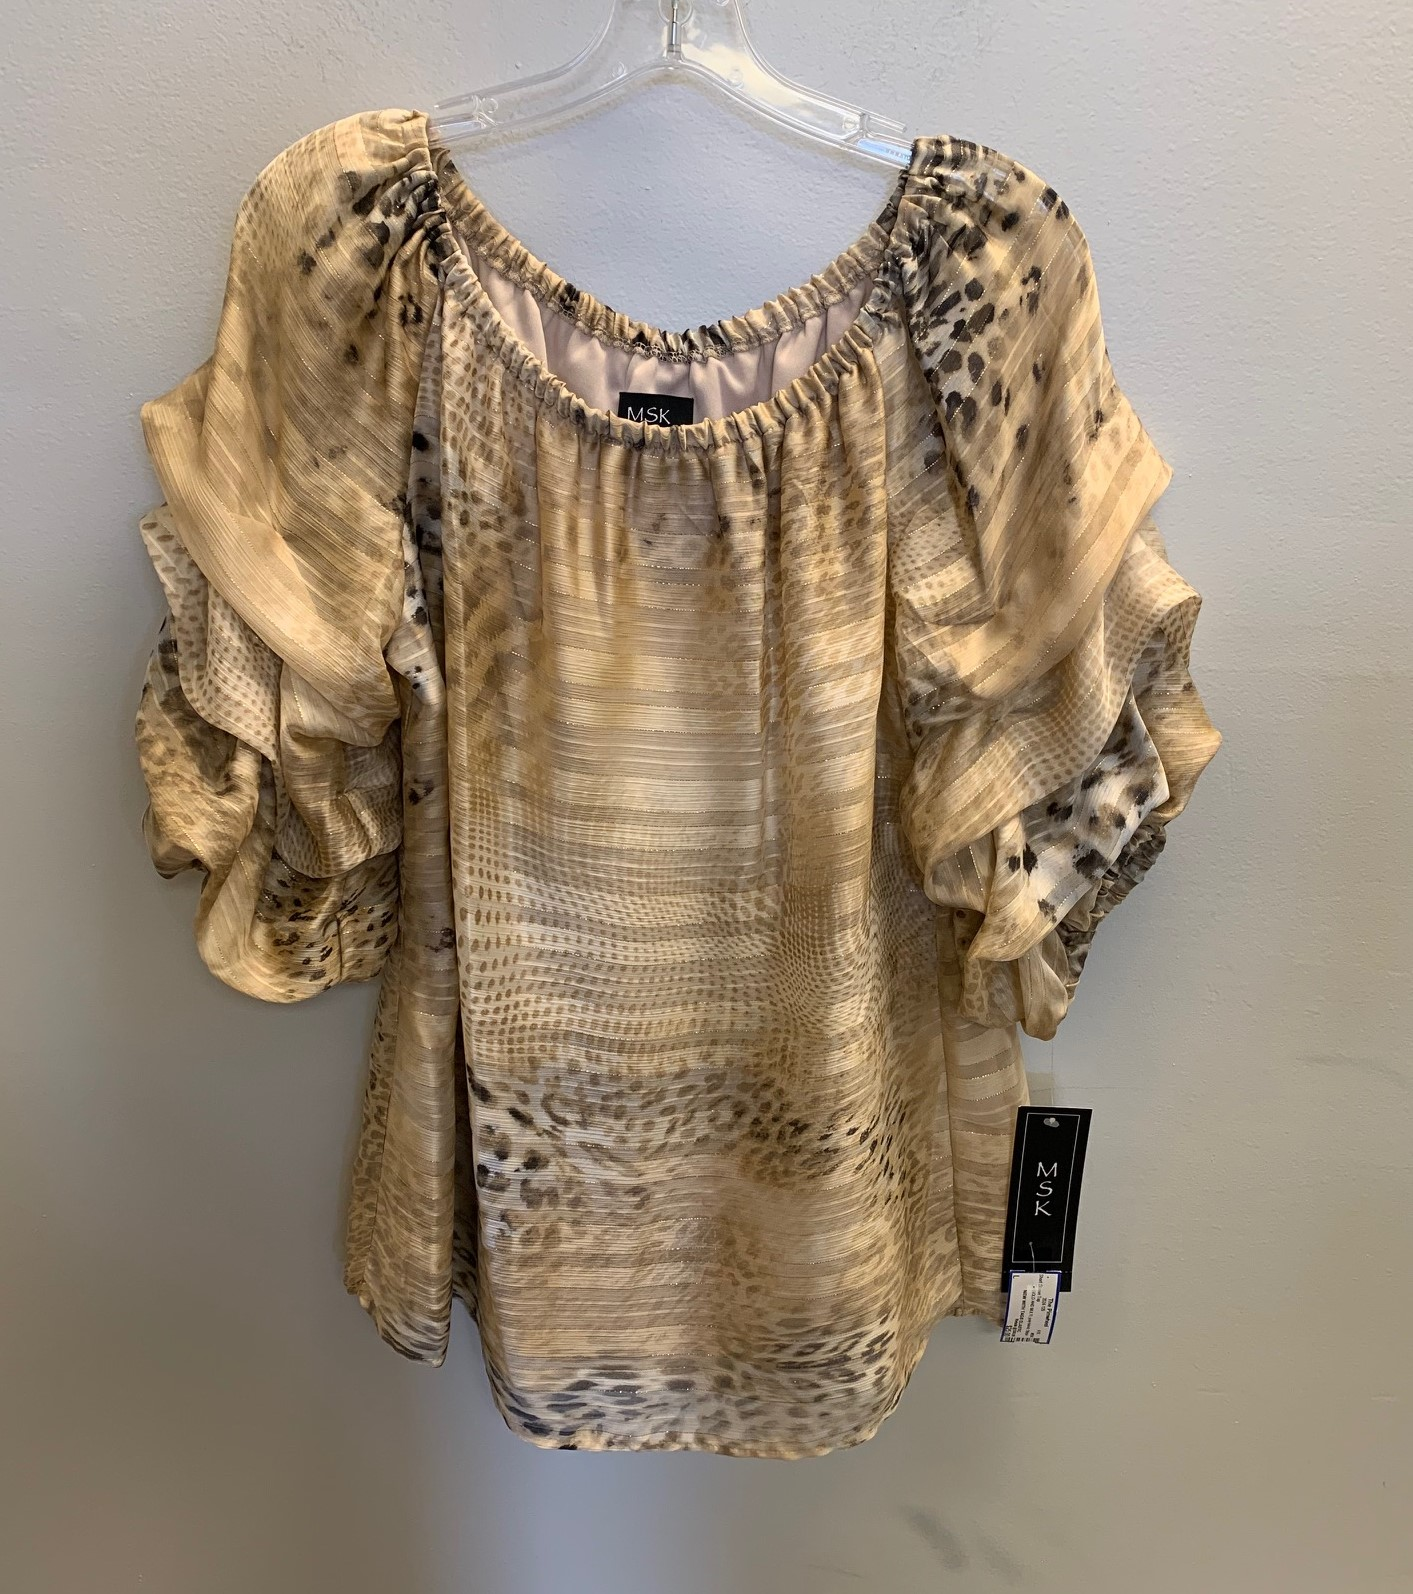 MSK-Size-L-GOLD-AND-MULTI-poly-blend-SALE-Short-Sleeve-Top_85373A.jpg